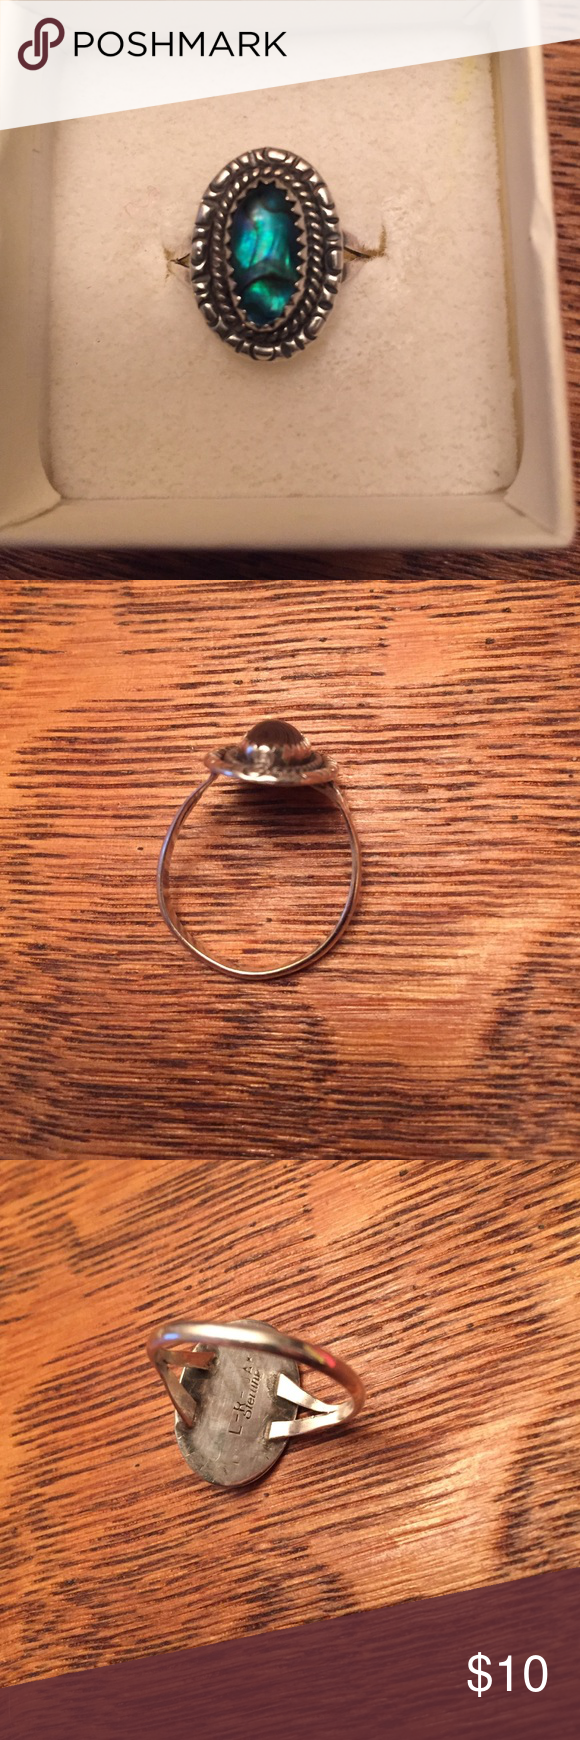 Sterling and Blue Stone Ring Approx. size 9 1/2; bought at a local art fair Jewelry Rings